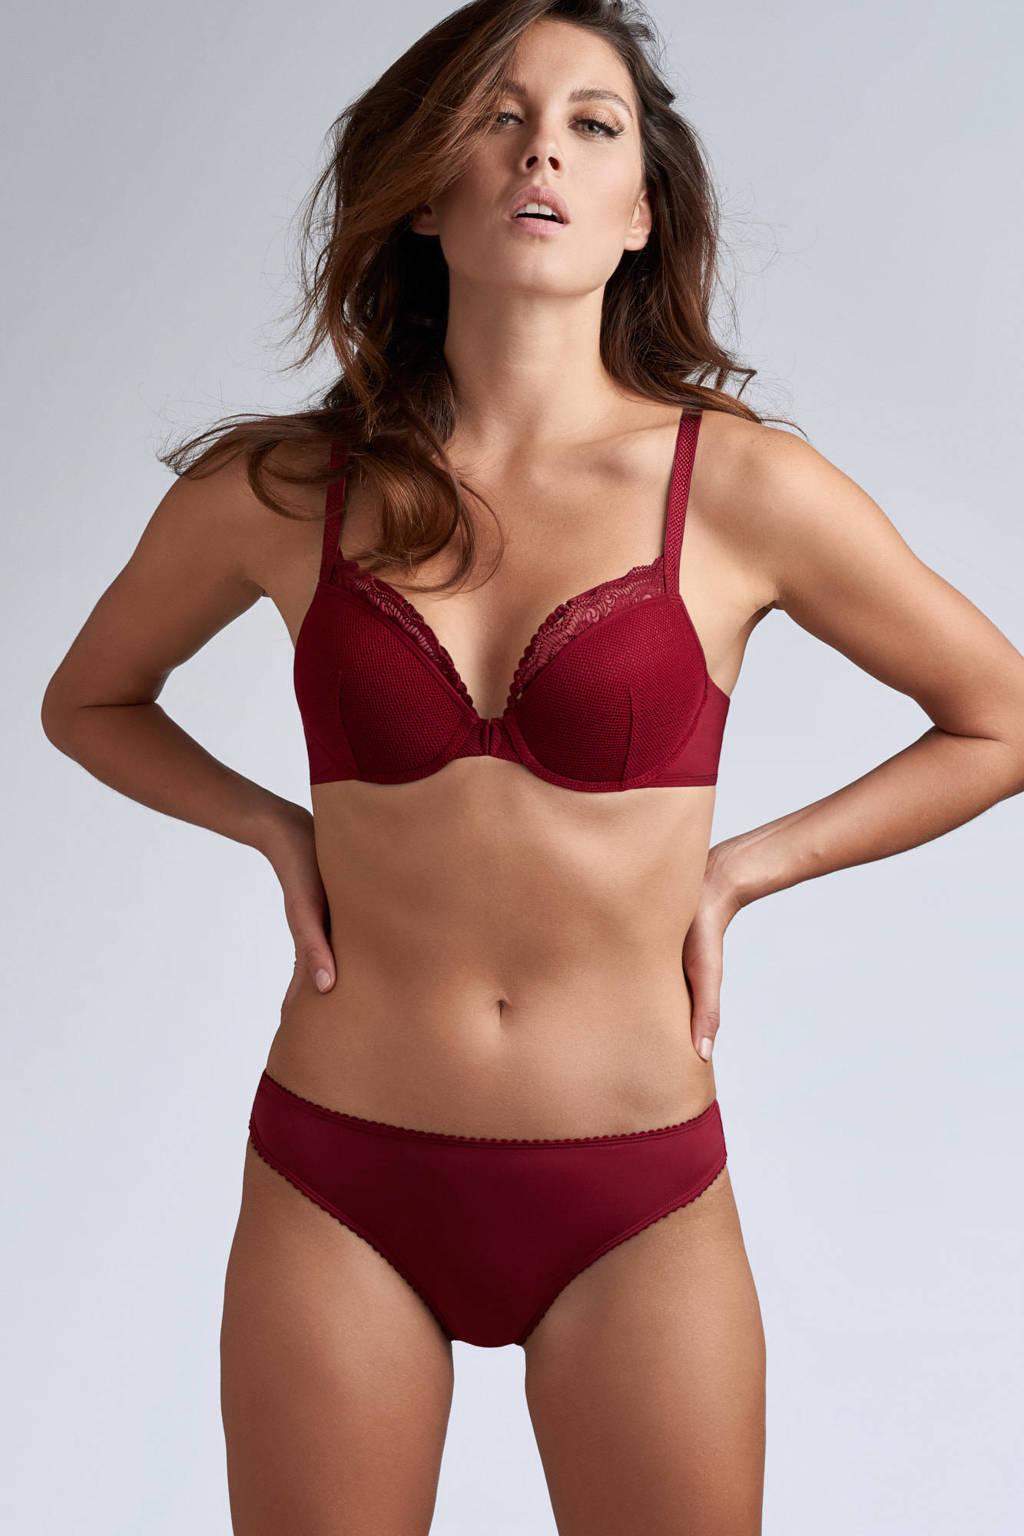 marlies dekkers Style push-up bh The Mauritshuis donkerrood, Donkerrood